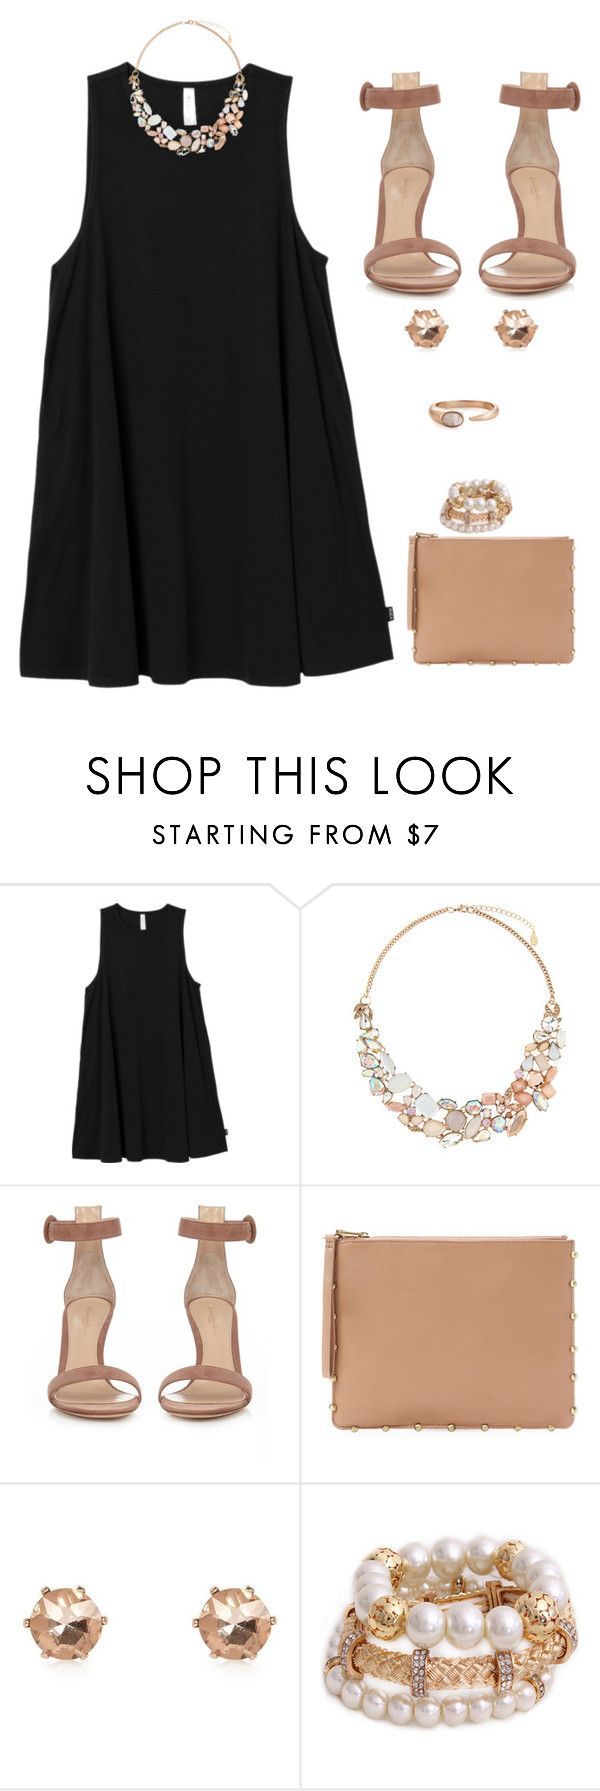 """EVENING LOOK ! ❤️"" by fashiontimer ❤ liked on Polyvore featuring RVCA, Accessorize, Gianvito Rossi and Cynthia Rowley"